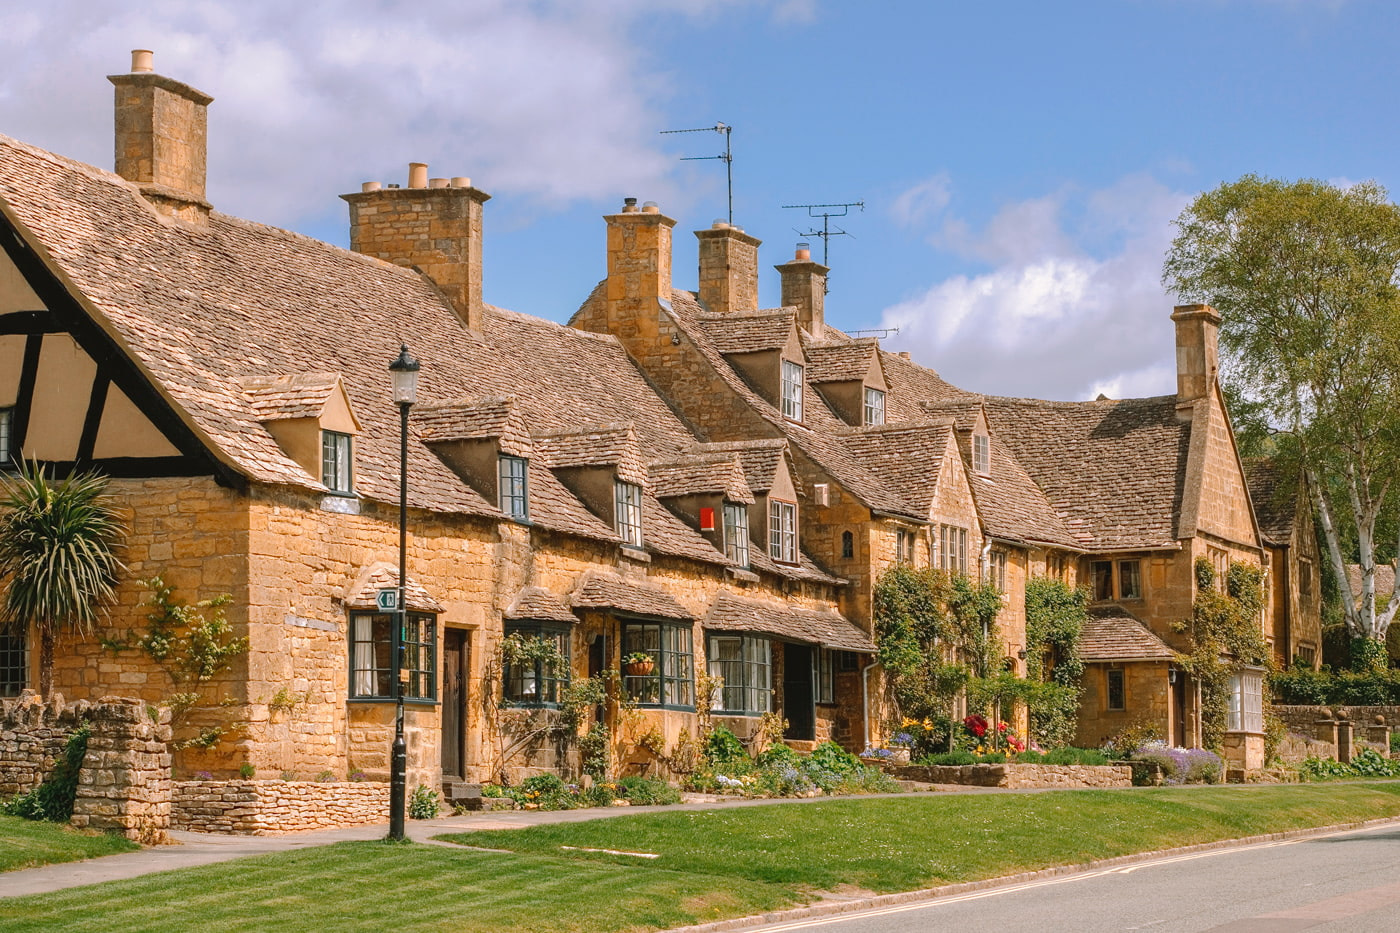 Charming village in the Cotswolds